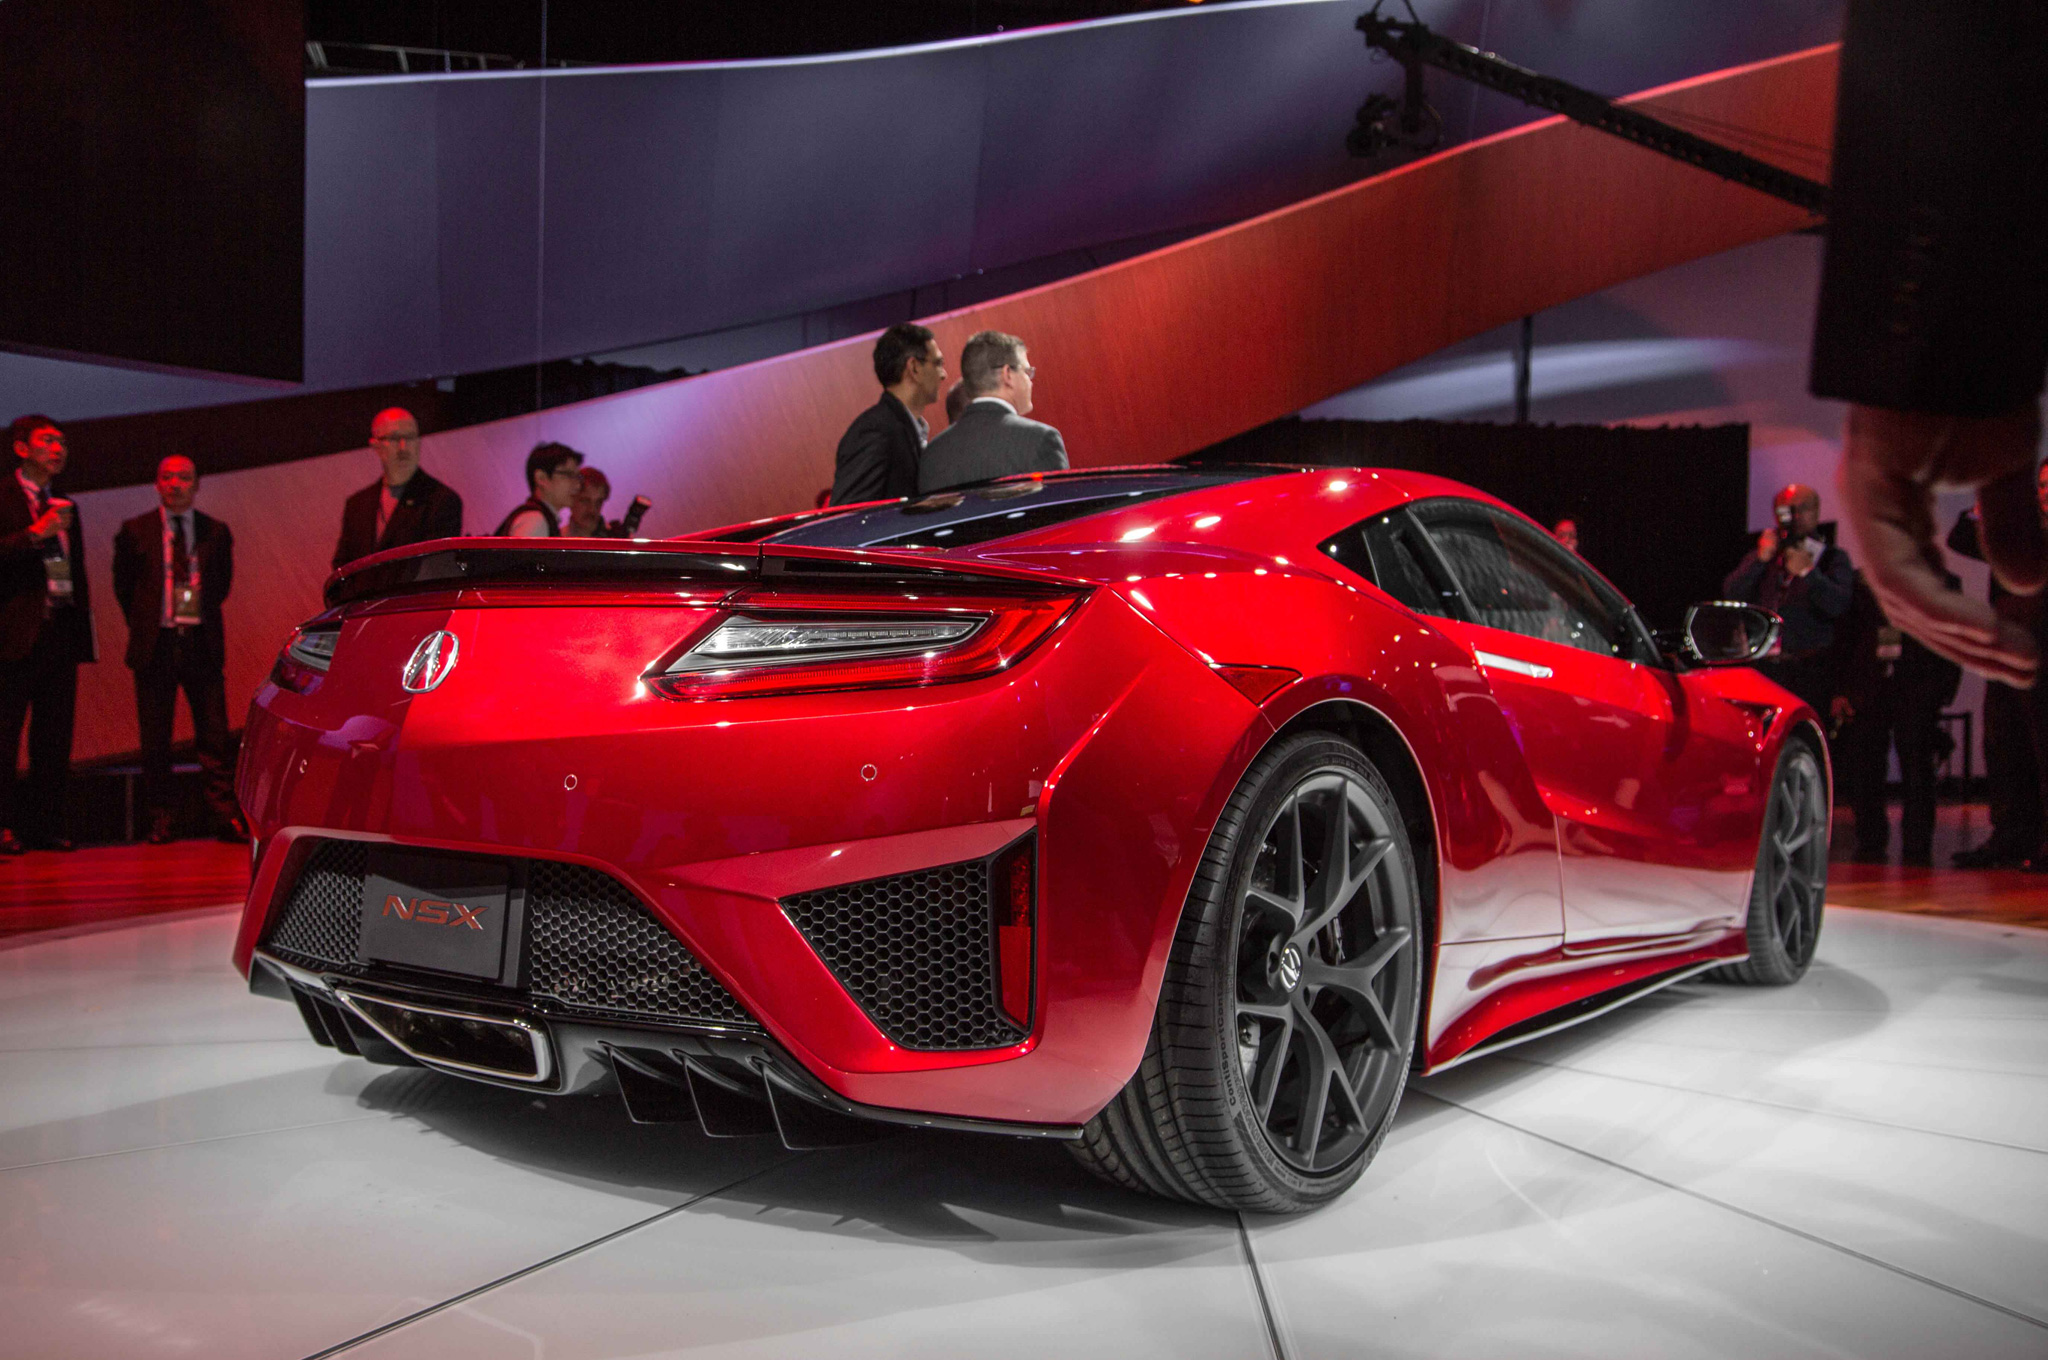 2016 Acura NSX Rear Side View